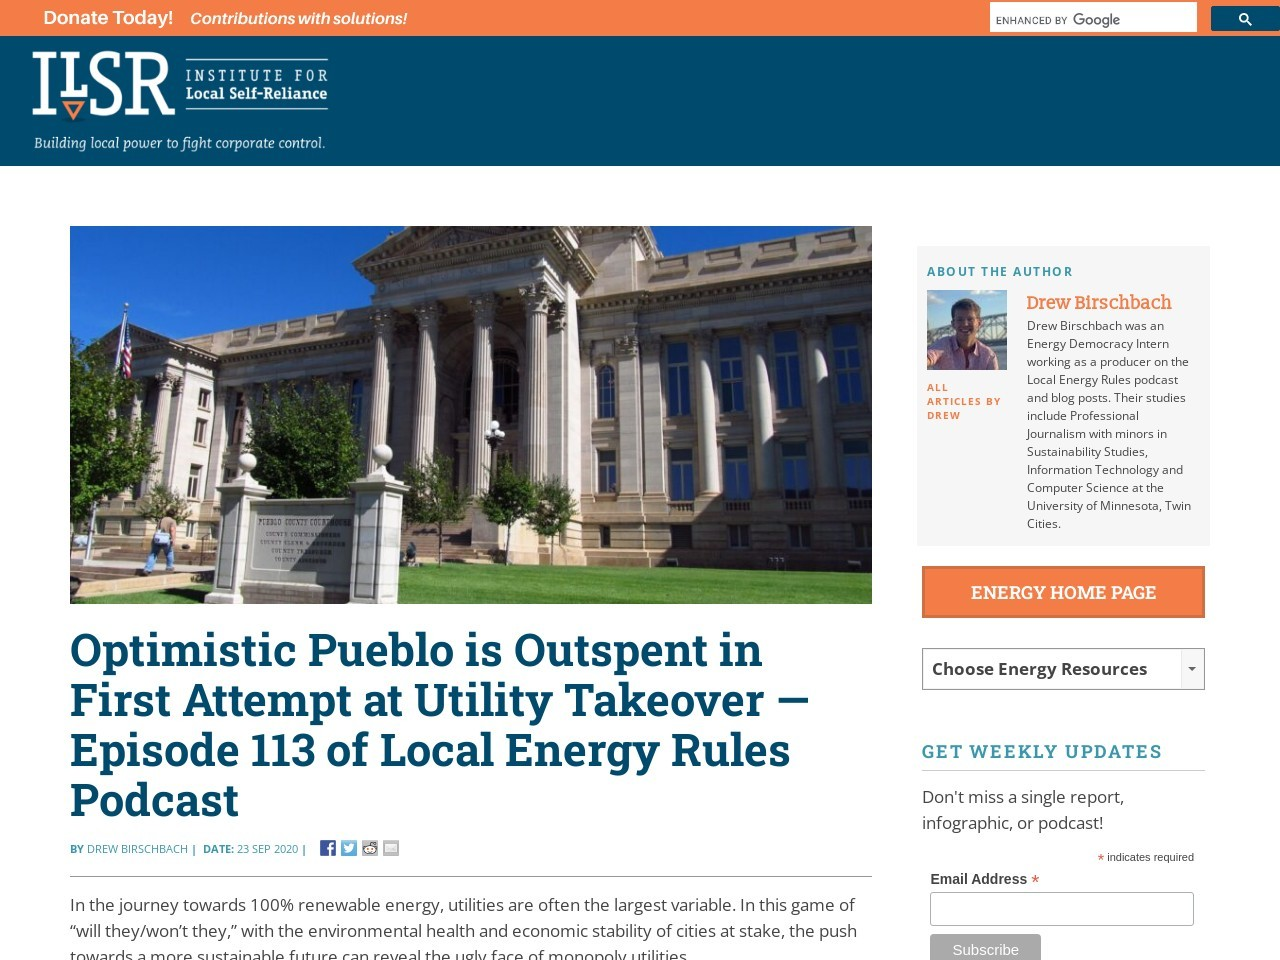 Optimistic Pueblo is Outspent in First Attempt at Utility Takeover — Episode 113 of Local Energy Rules Podcast